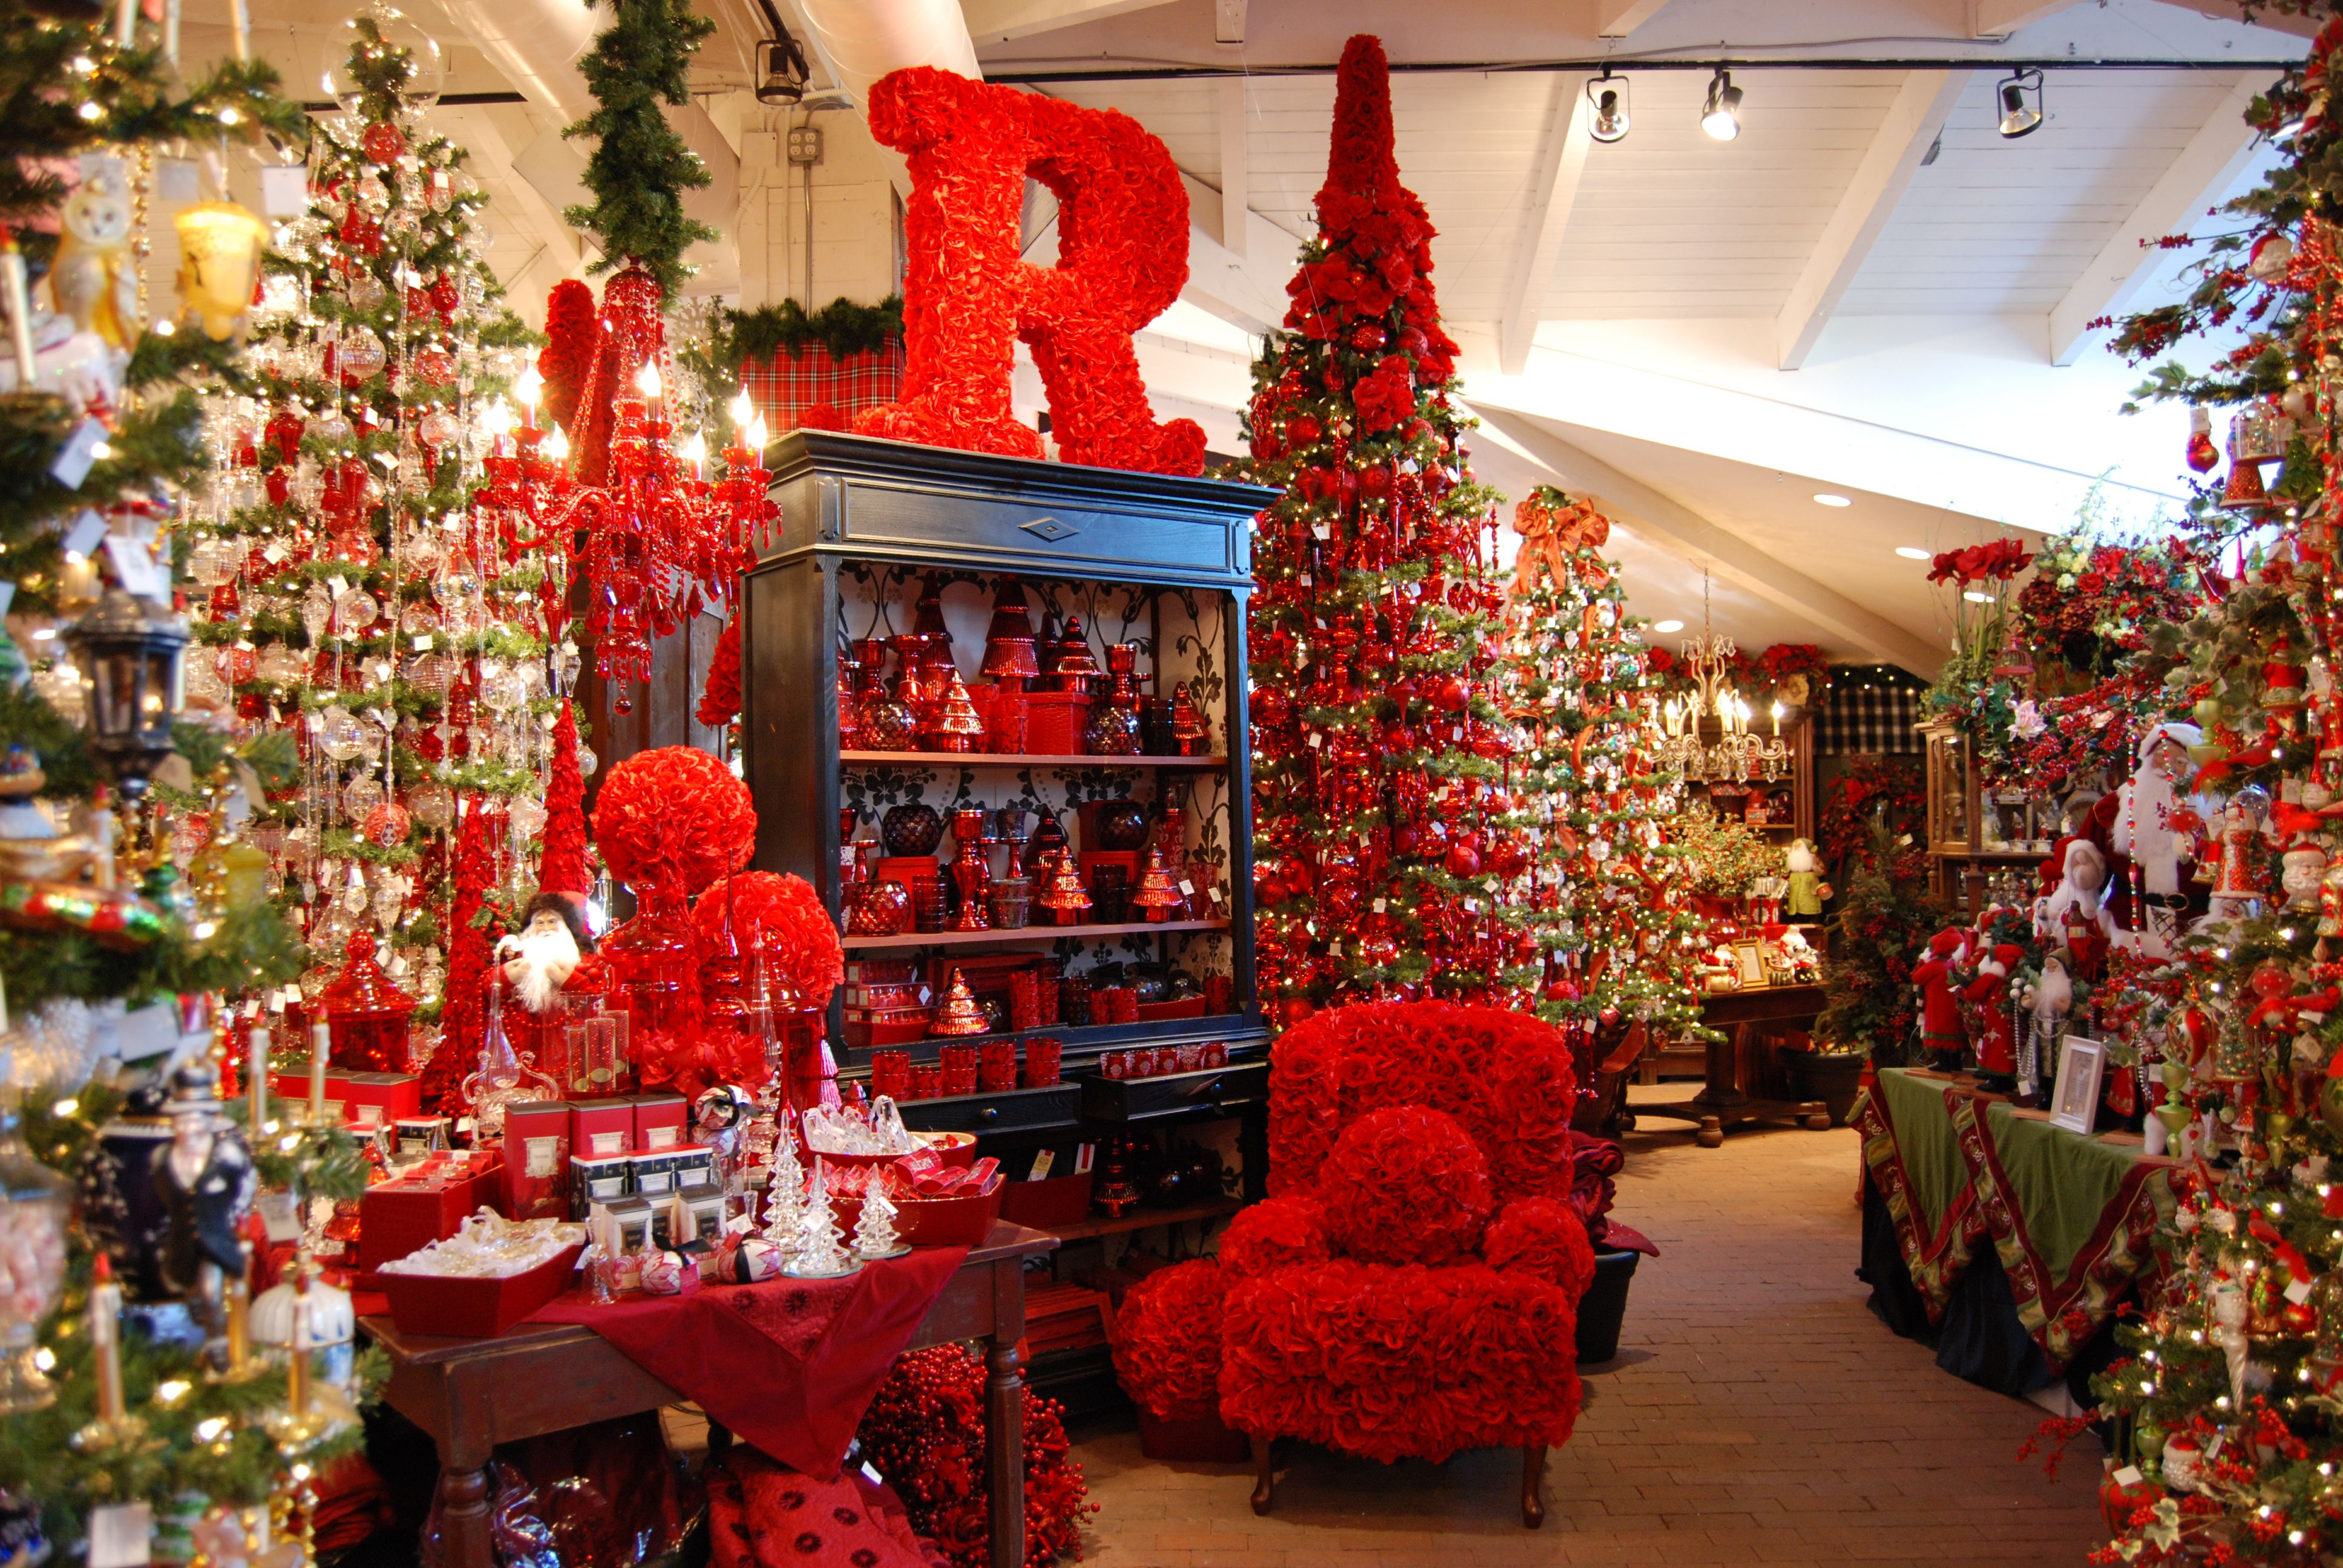 7754e978a75b79ae749c87321ed766bb - When Does Rogers Gardens Decorated For Christmas